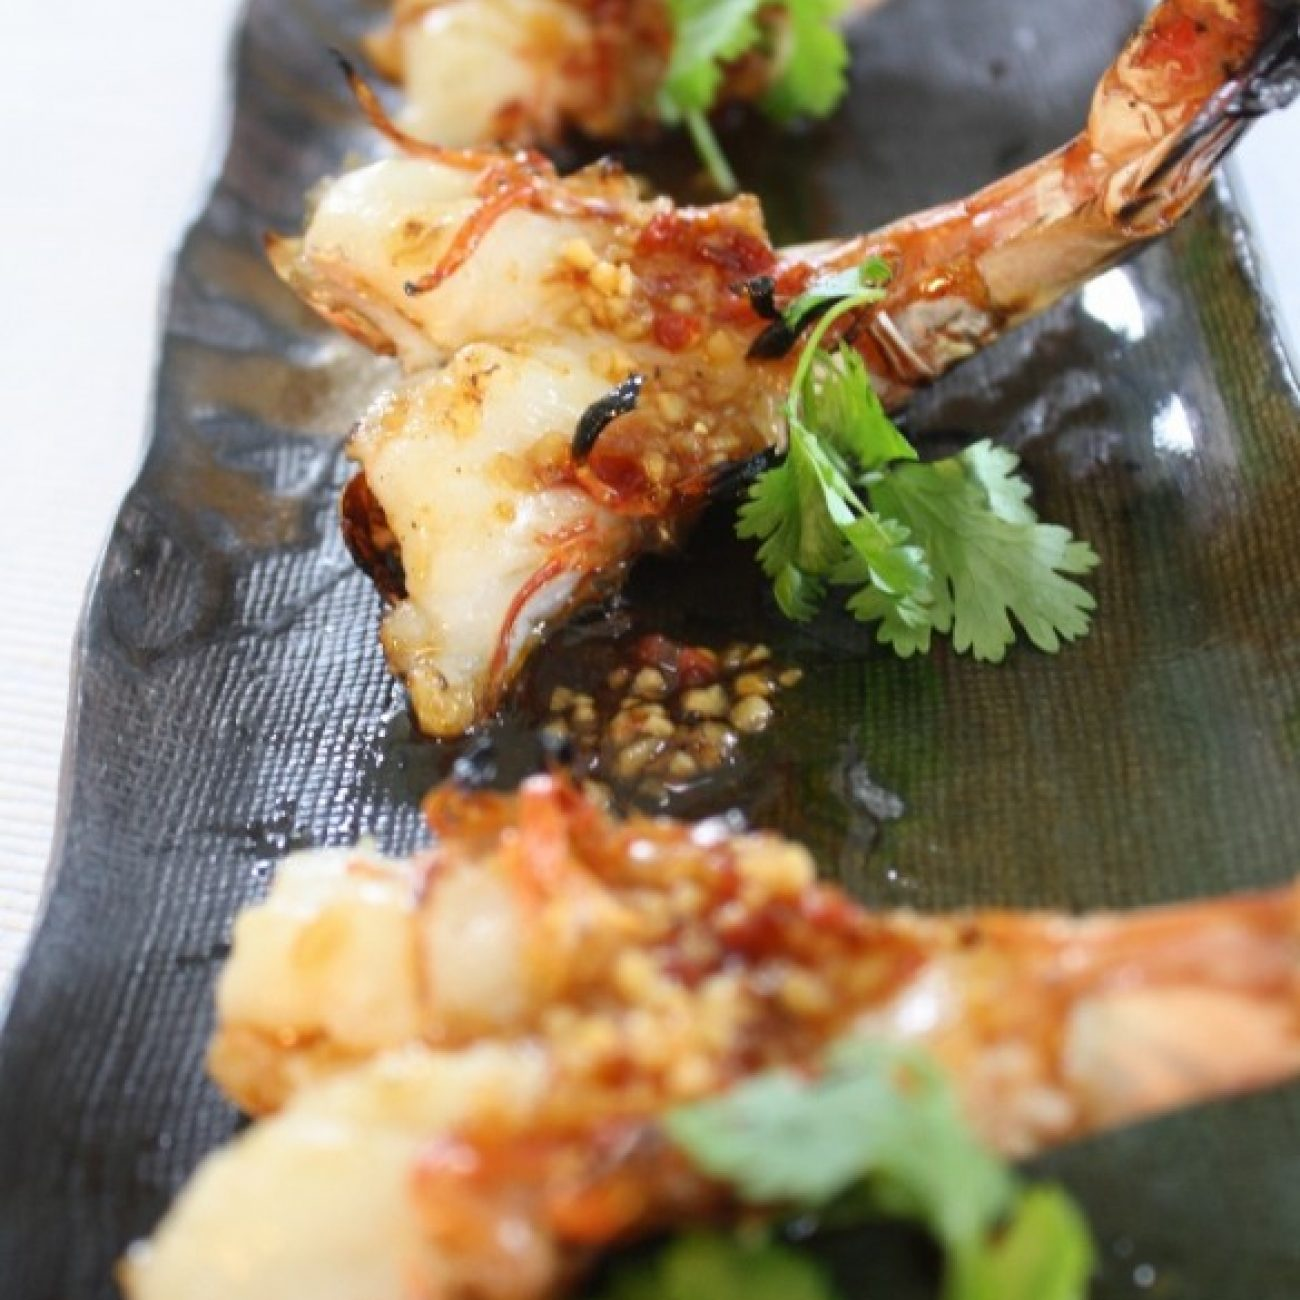 Char Grilled Shrimp with Spicy Lemon Chili Sauce